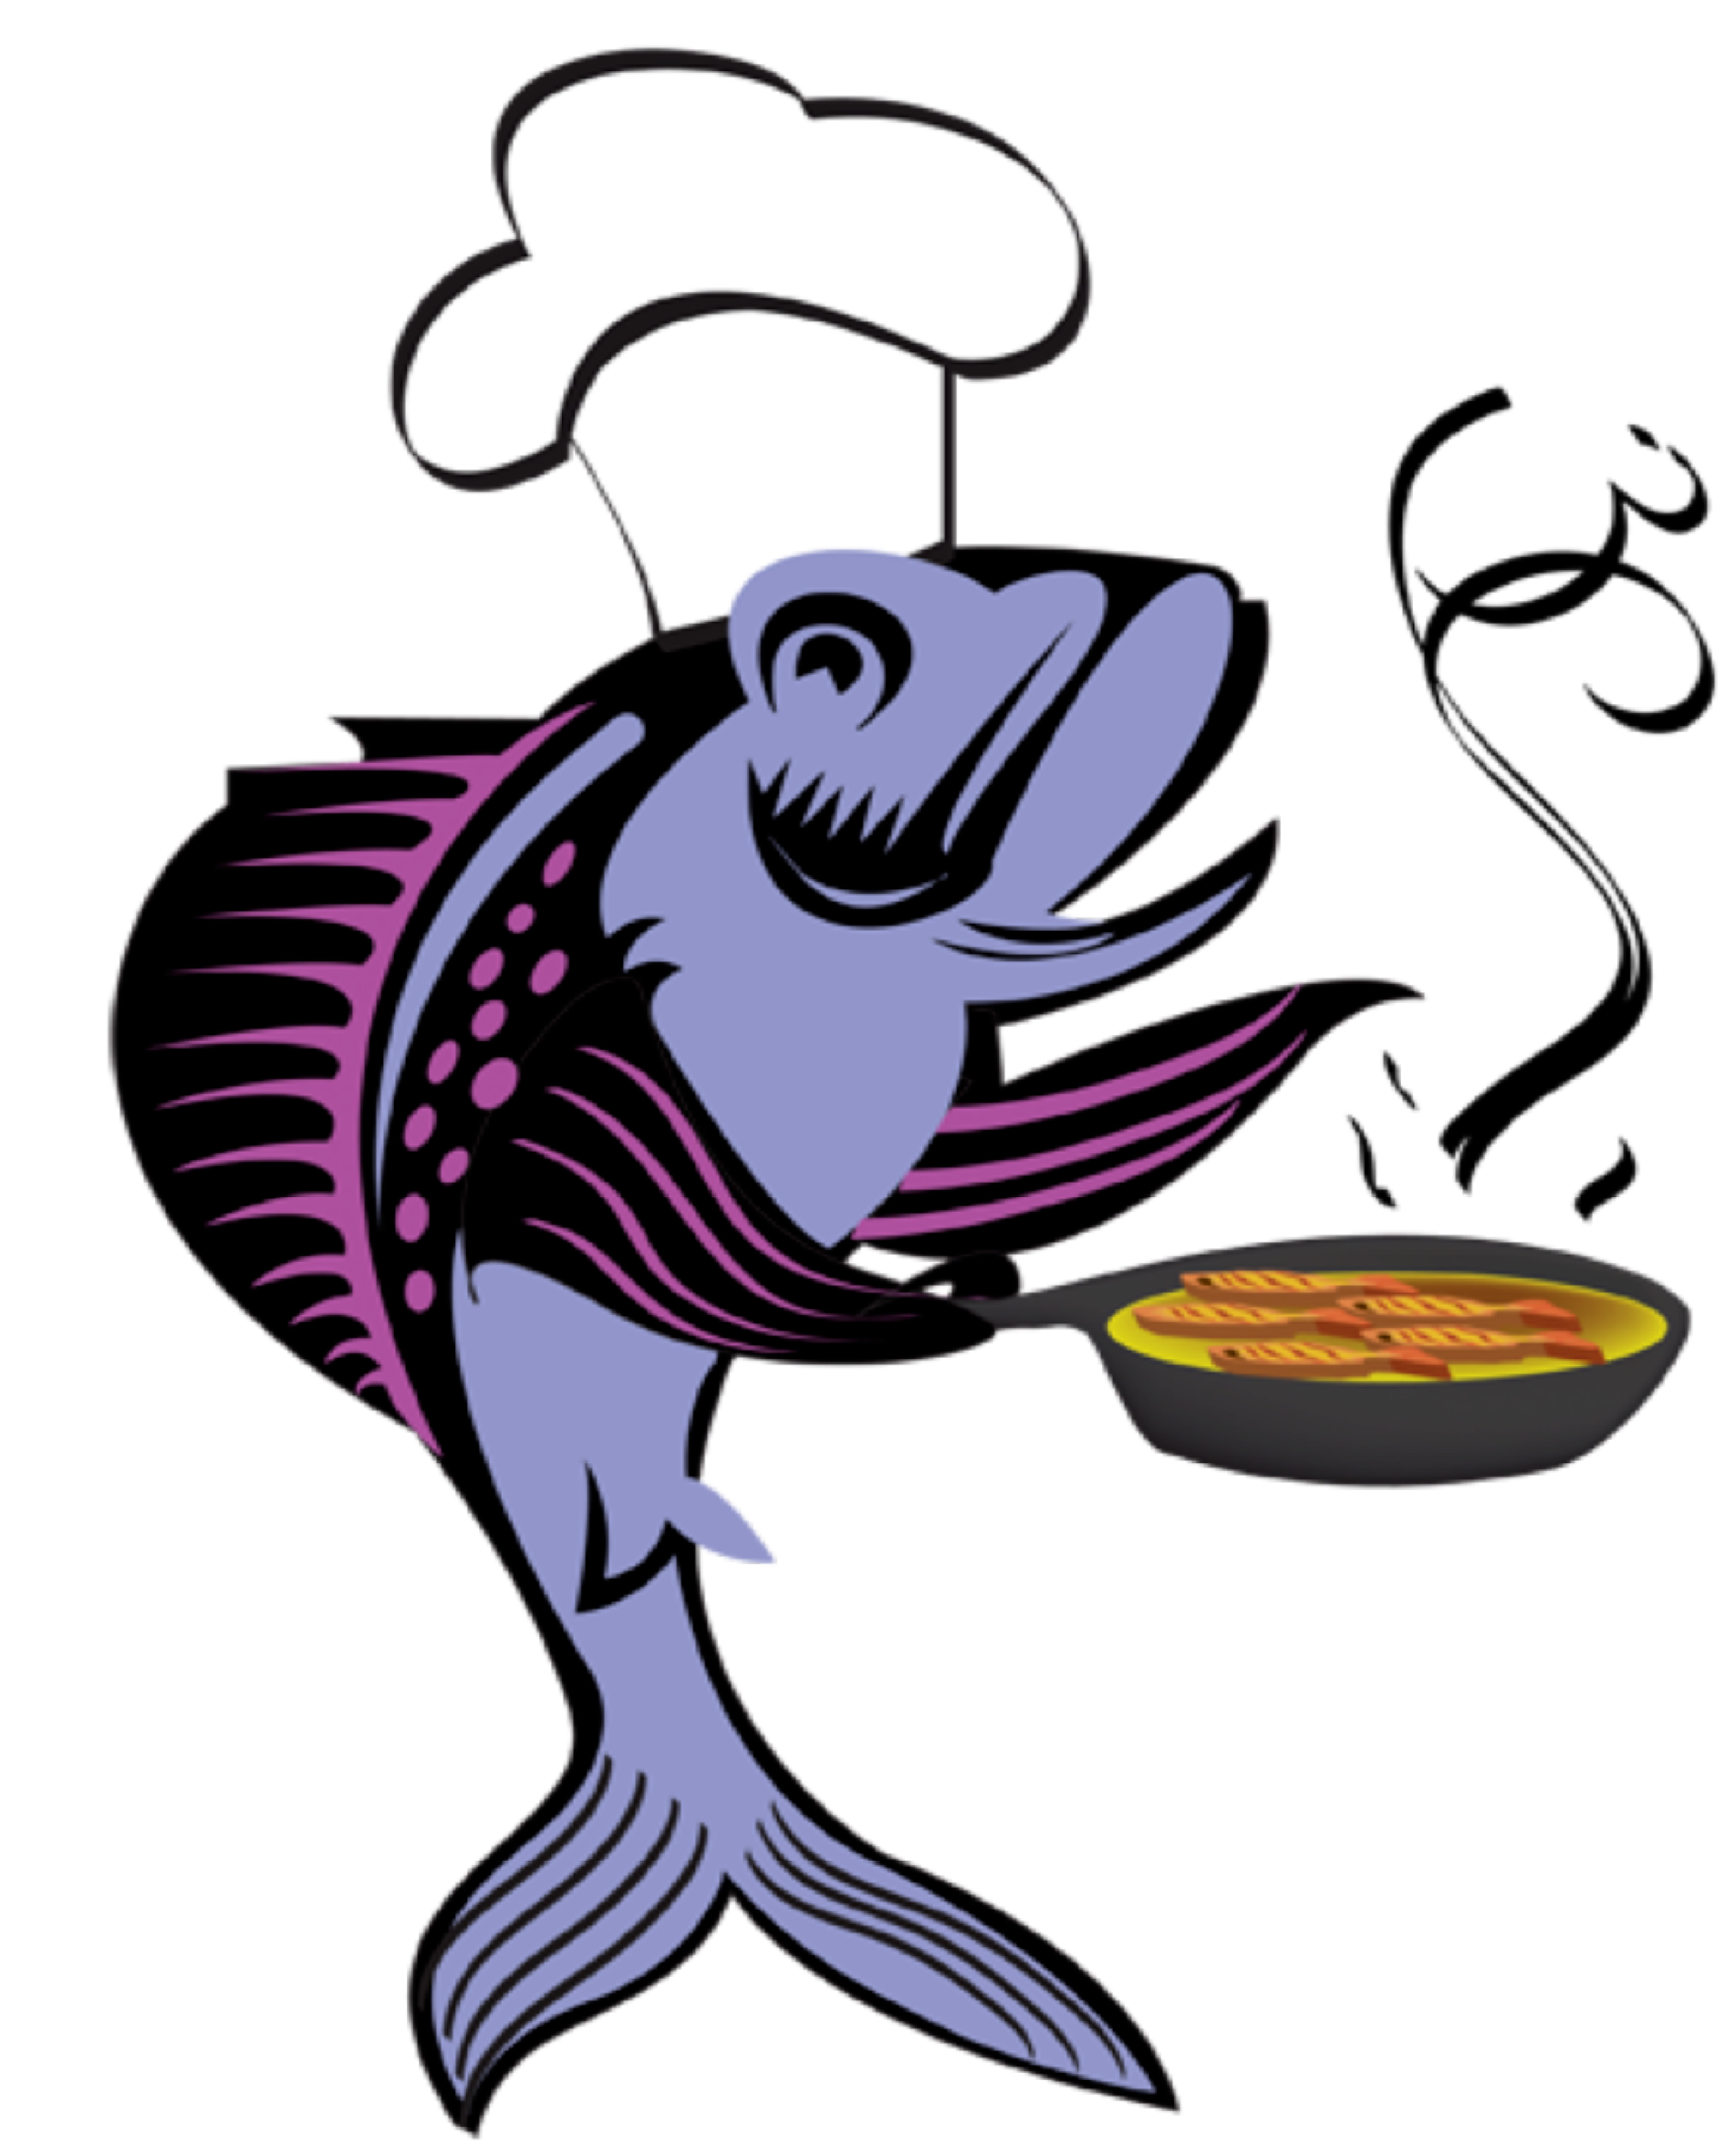 Fish Fry Clipart Images All For Photo Do-Fish Fry Clipart Images All For Photo Dot Com-12